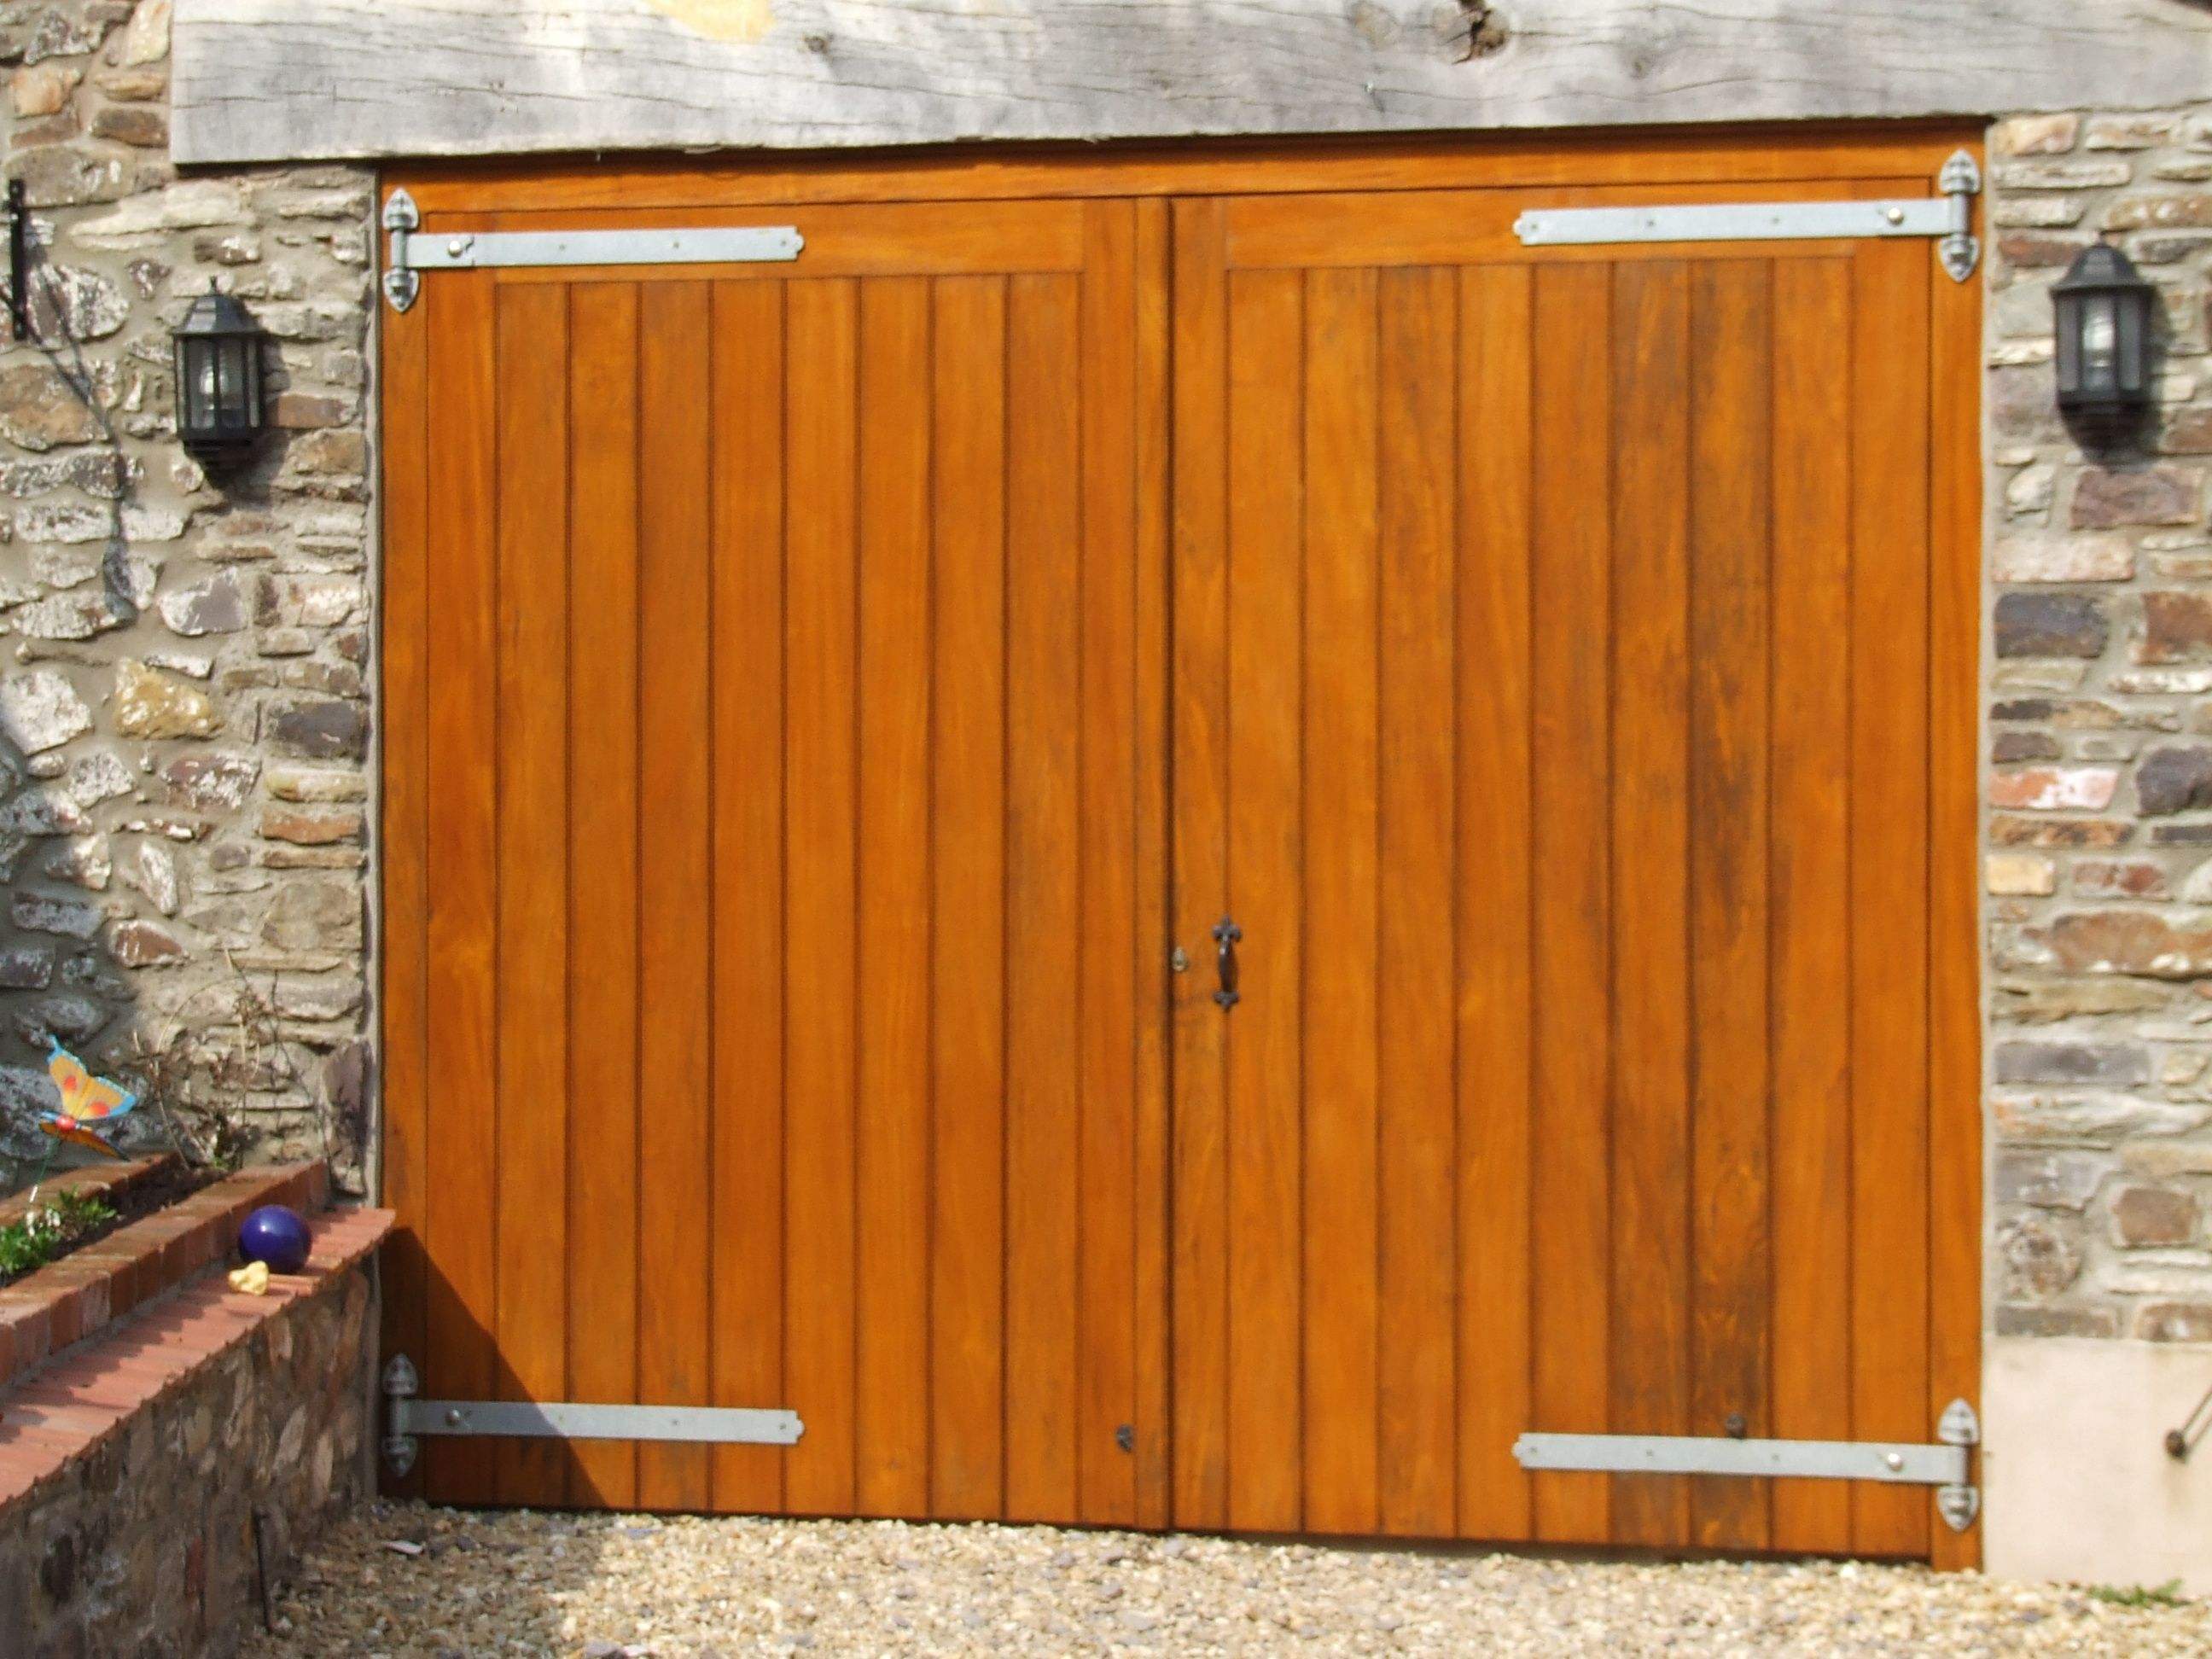 Hardwood garage doors coated with Sikkens light Oak stain and fitted with  galvanized fittings. Hardwood garage doors coated with Sikkens light Oak stain and